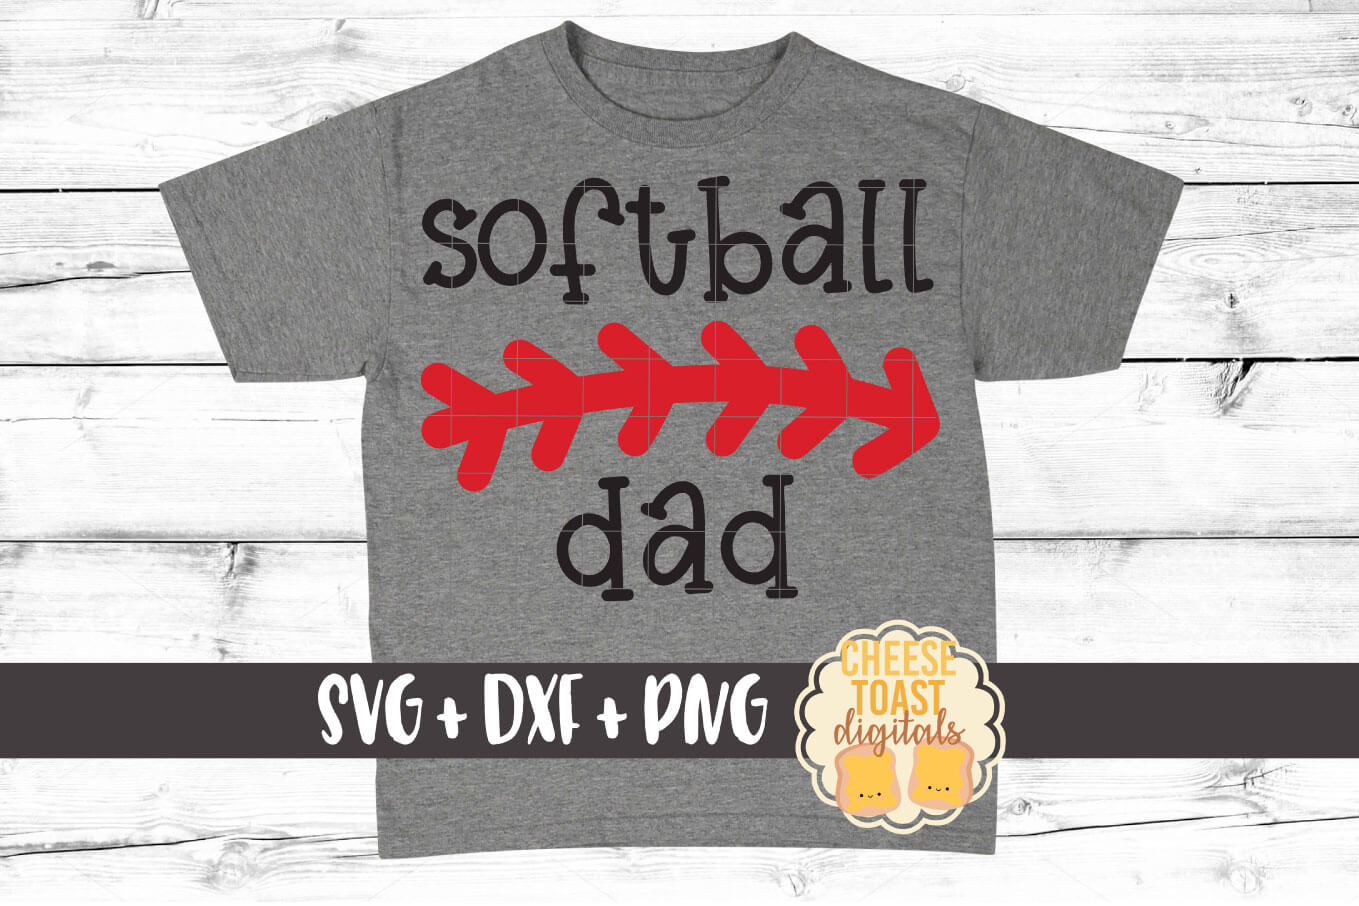 Download Free Softball Dad Graphic By Cheesetoastdigitals Creative Fabrica for Cricut Explore, Silhouette and other cutting machines.